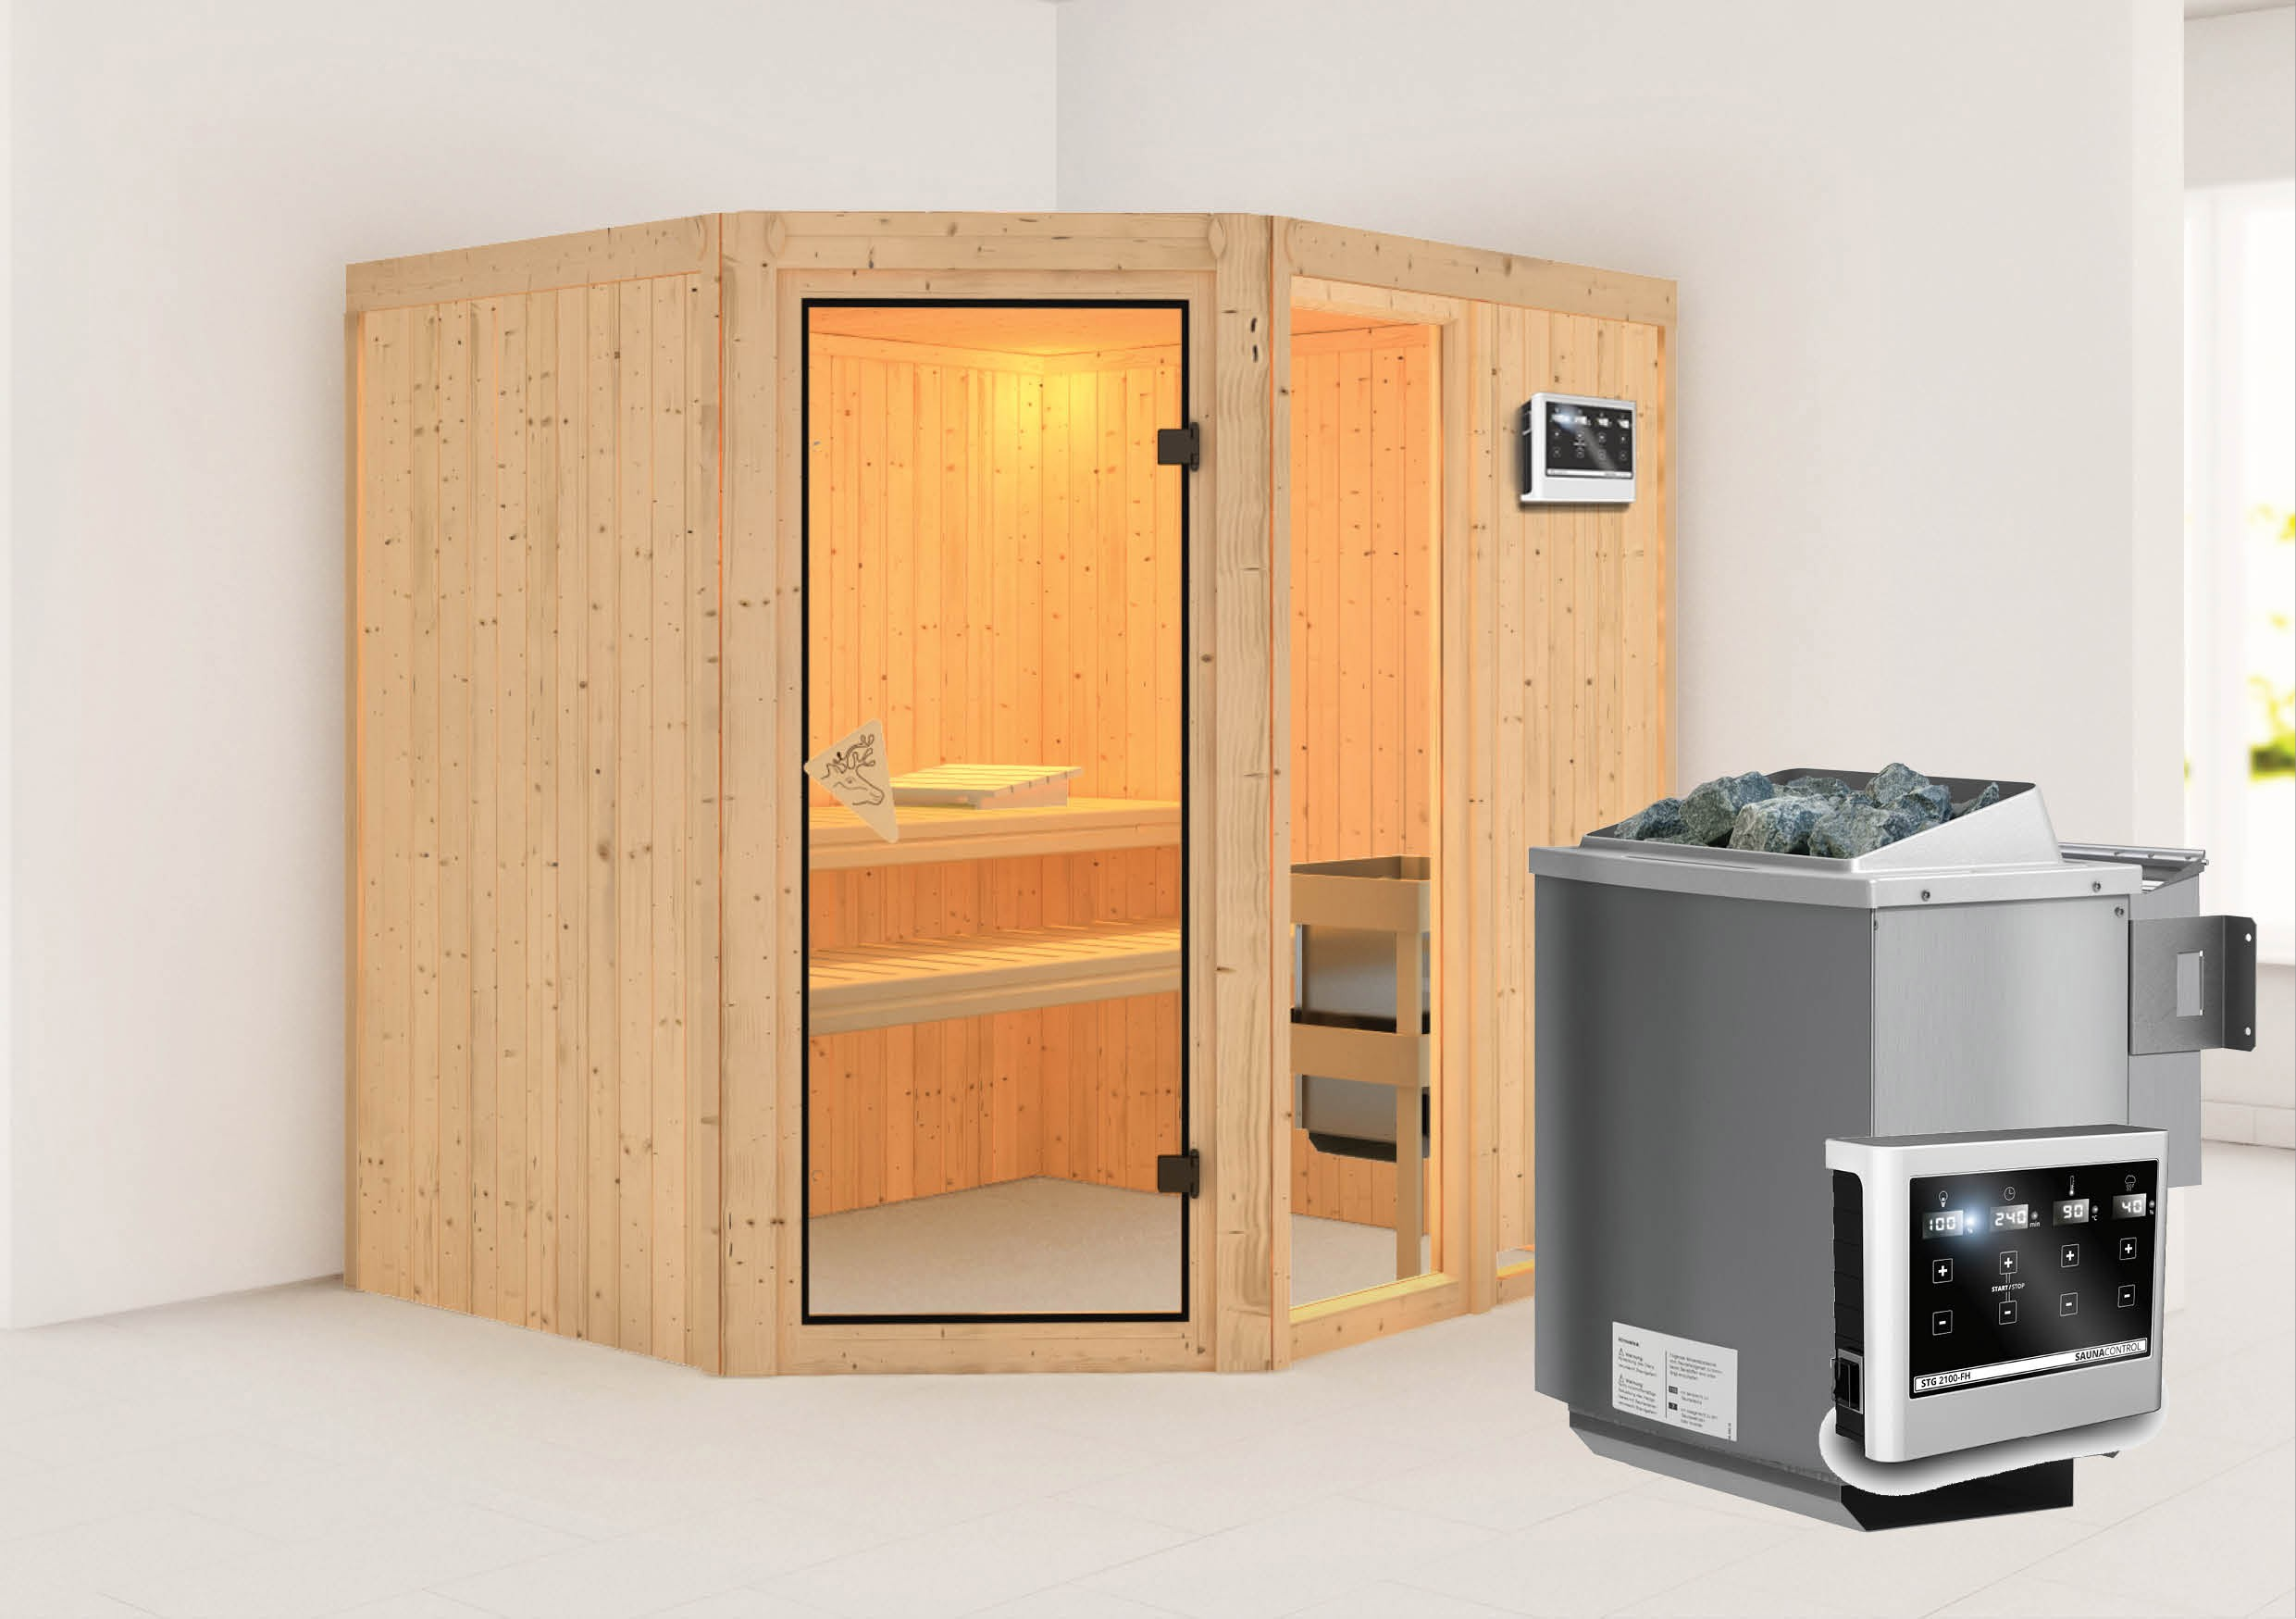 karibu sauna fiona2 68mm mit bio ofen 9kw extern classic t r bei. Black Bedroom Furniture Sets. Home Design Ideas